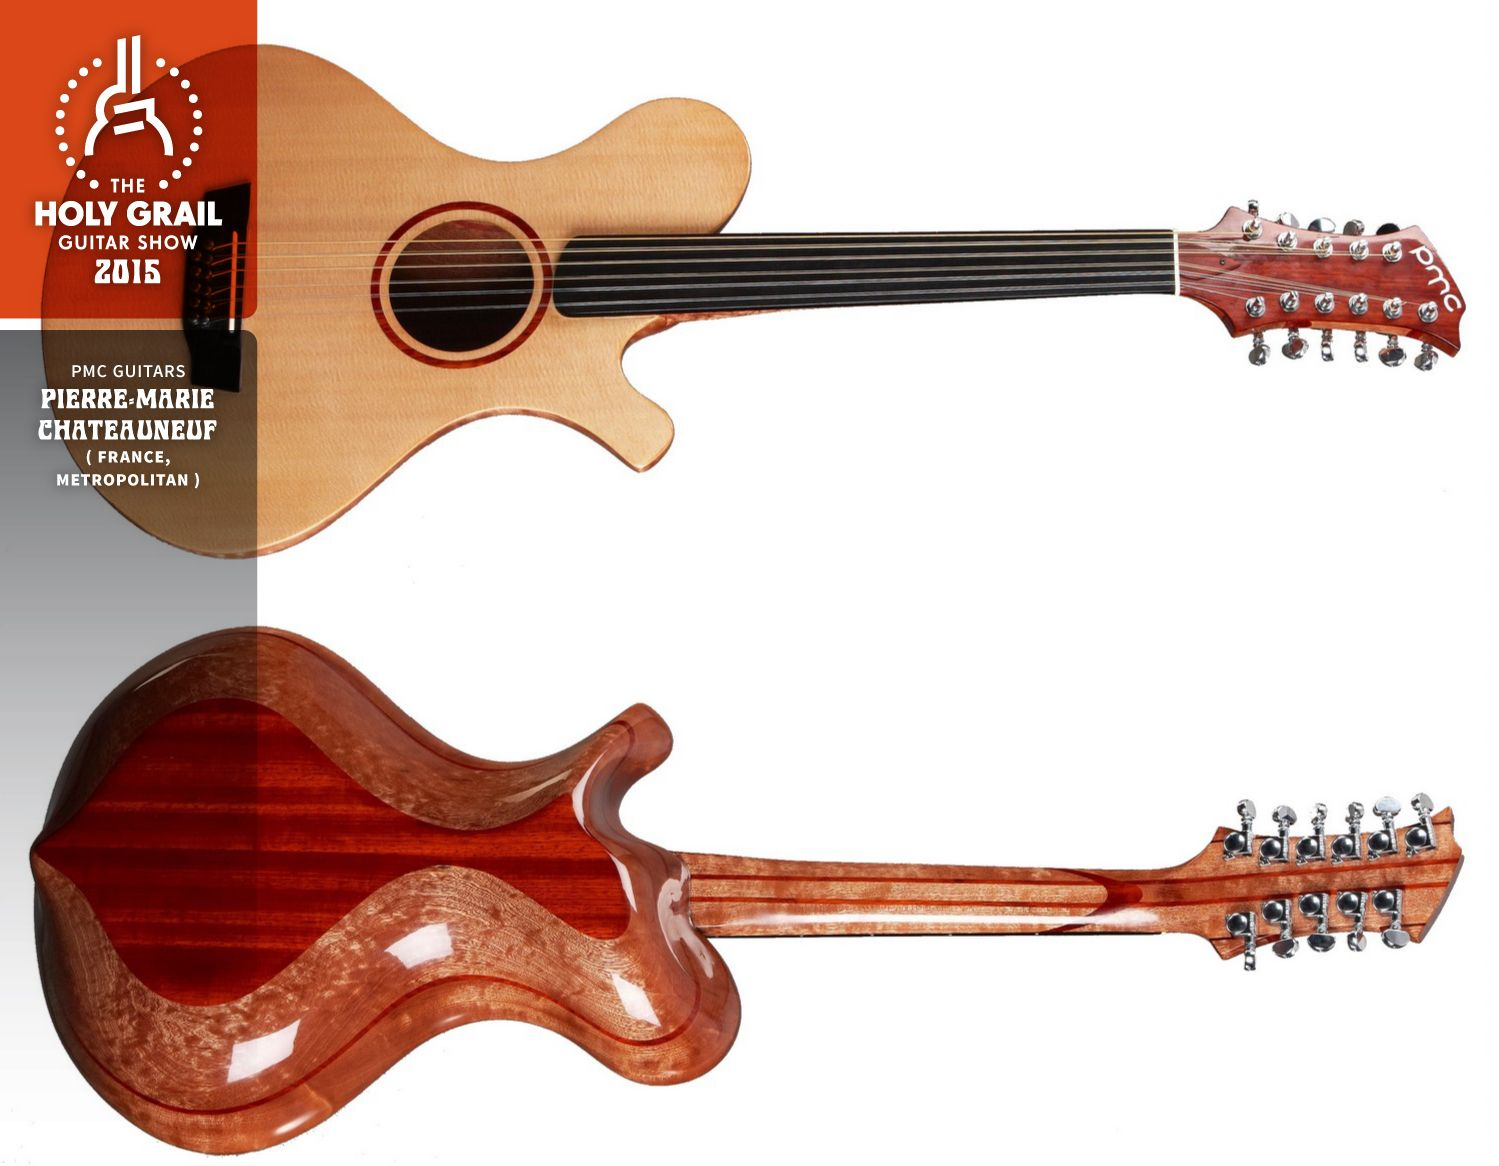 Exhibitor at the Holy Grail Guitar Show 2015:Pierre-Marie Chateauneuf, PMC Guitars, France, Metropolitan. http://www.pmcguitars.com/, https://www.facebook.com/pmcguitars, http://holygrailguitarshow.com/exhibitors/pmc-guitars/